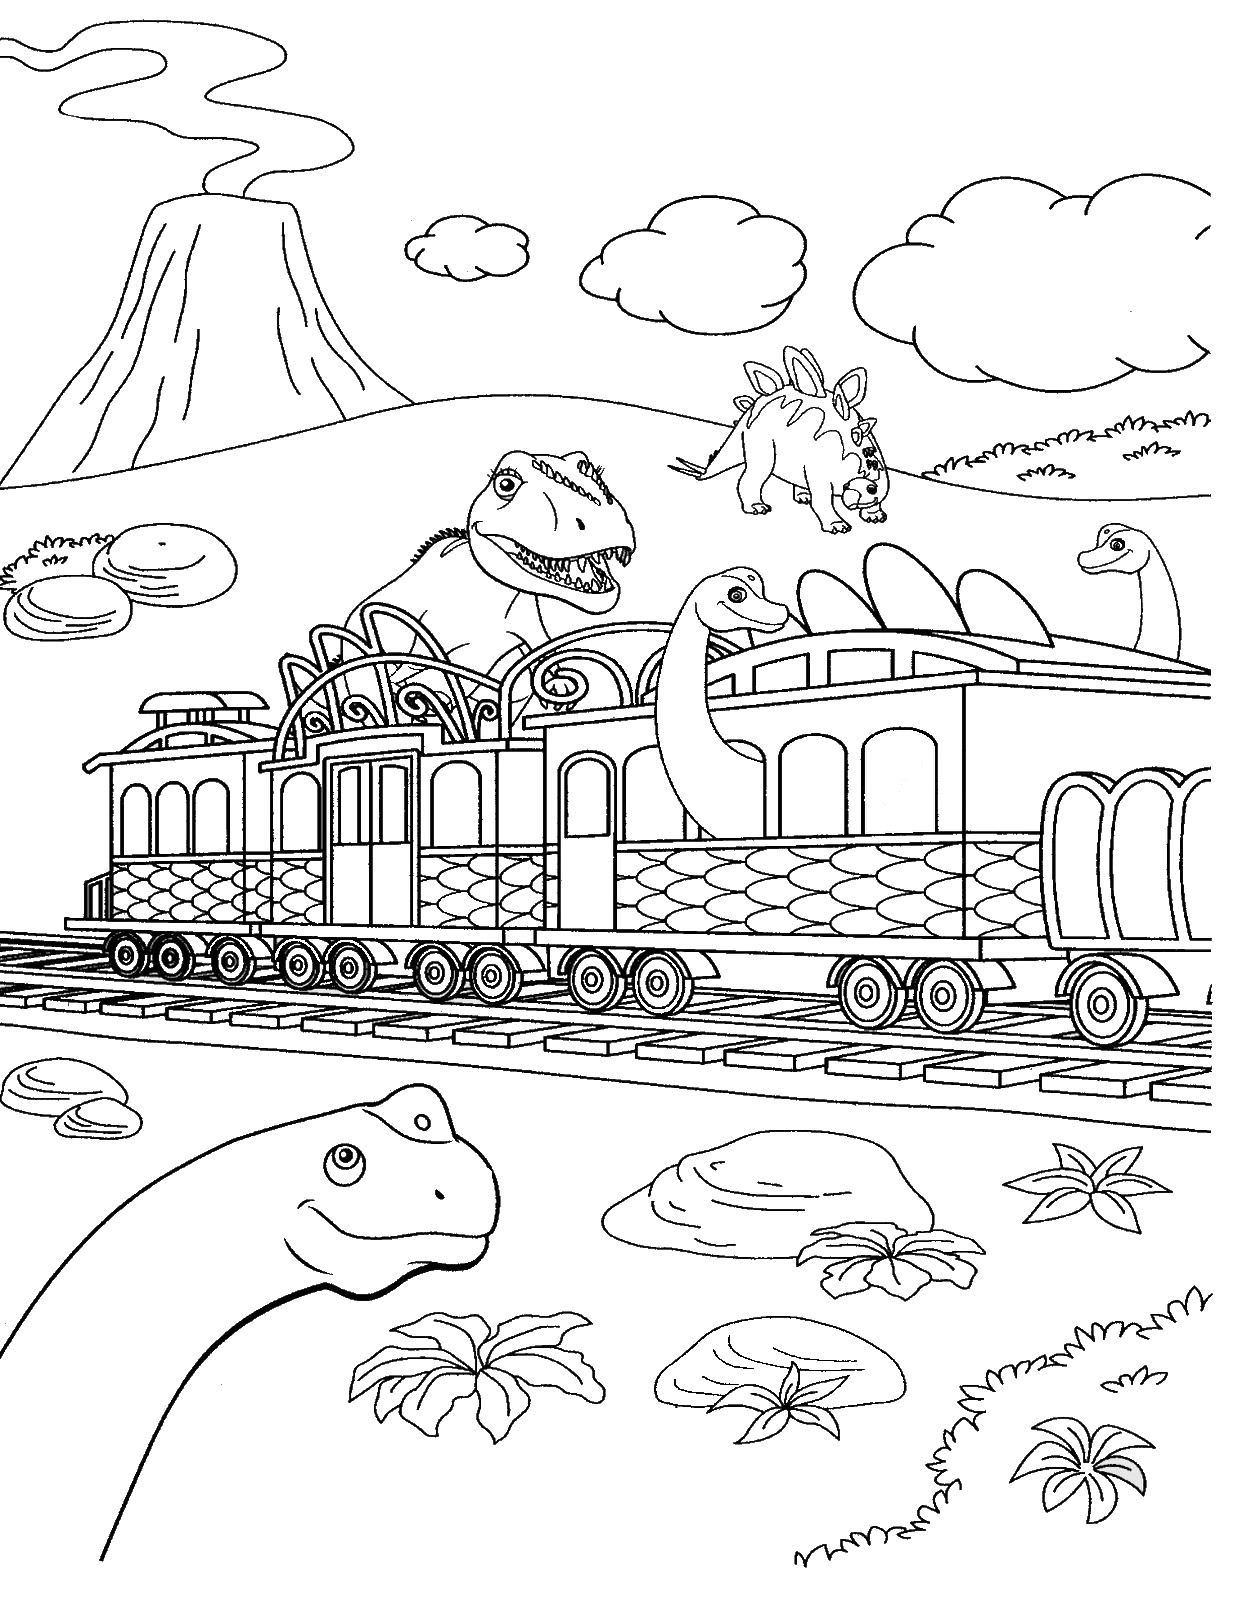 dinosaur train coloring pages dongs - photo#34